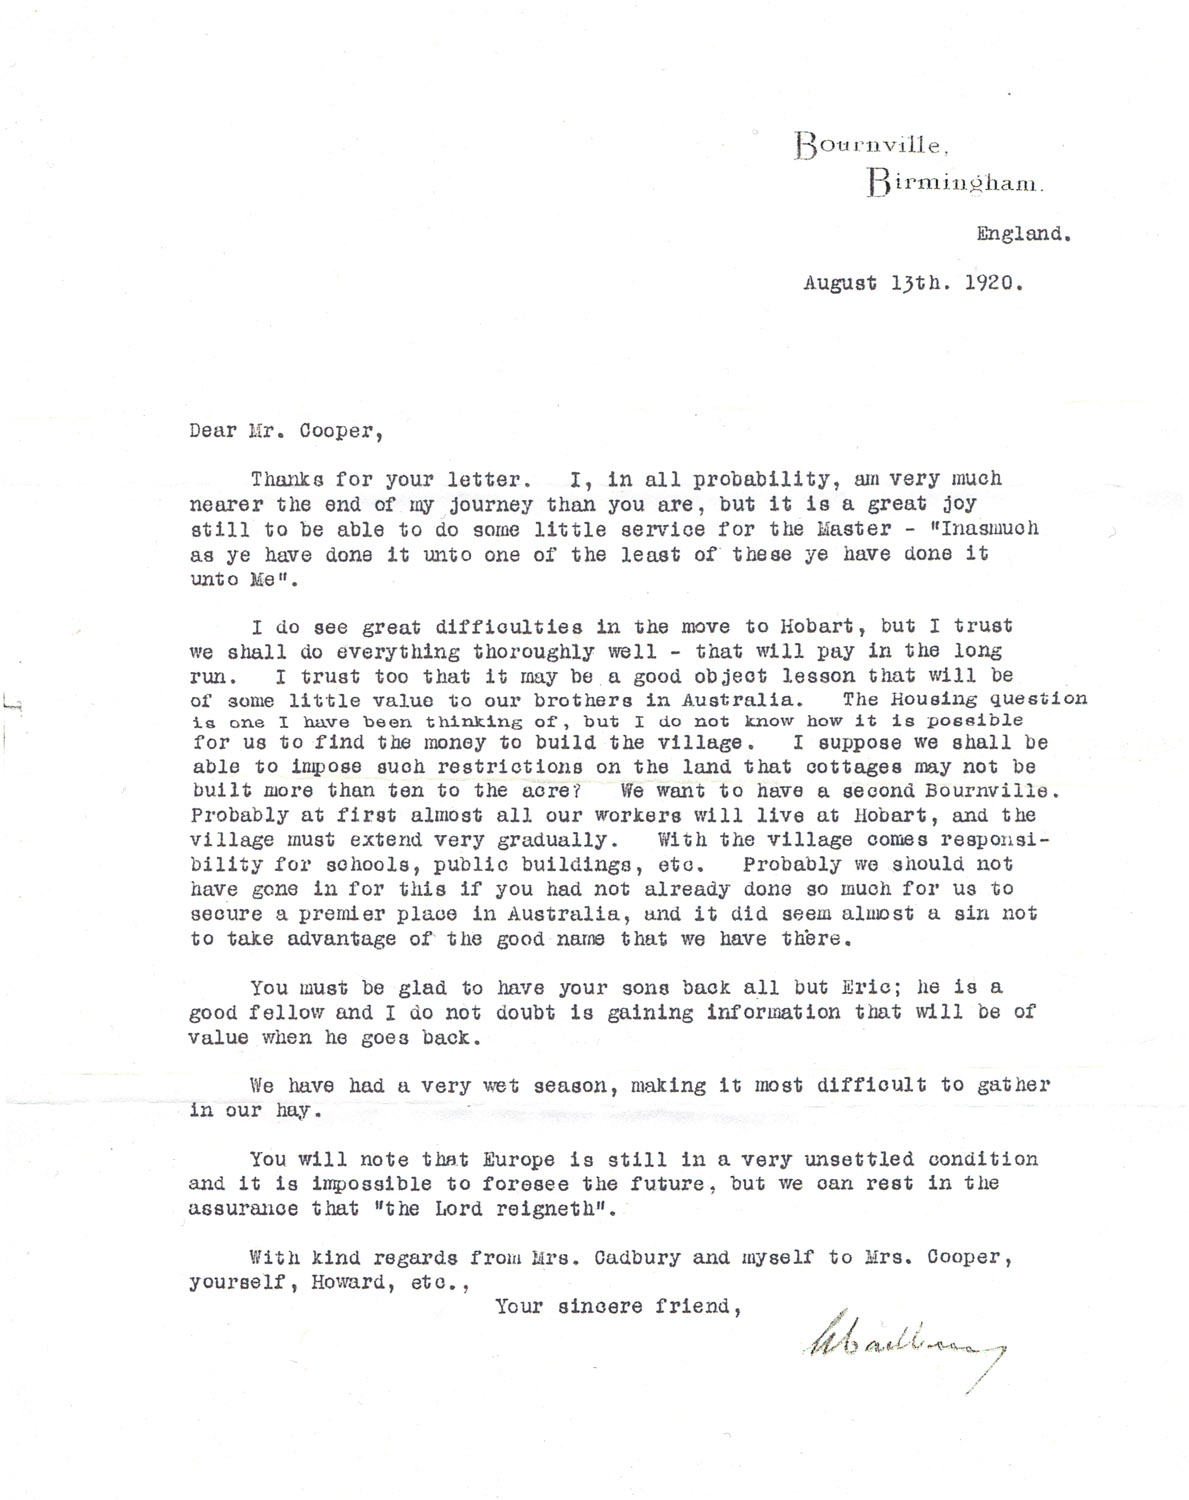 Letter From George Cadbury In England To William Cooper In